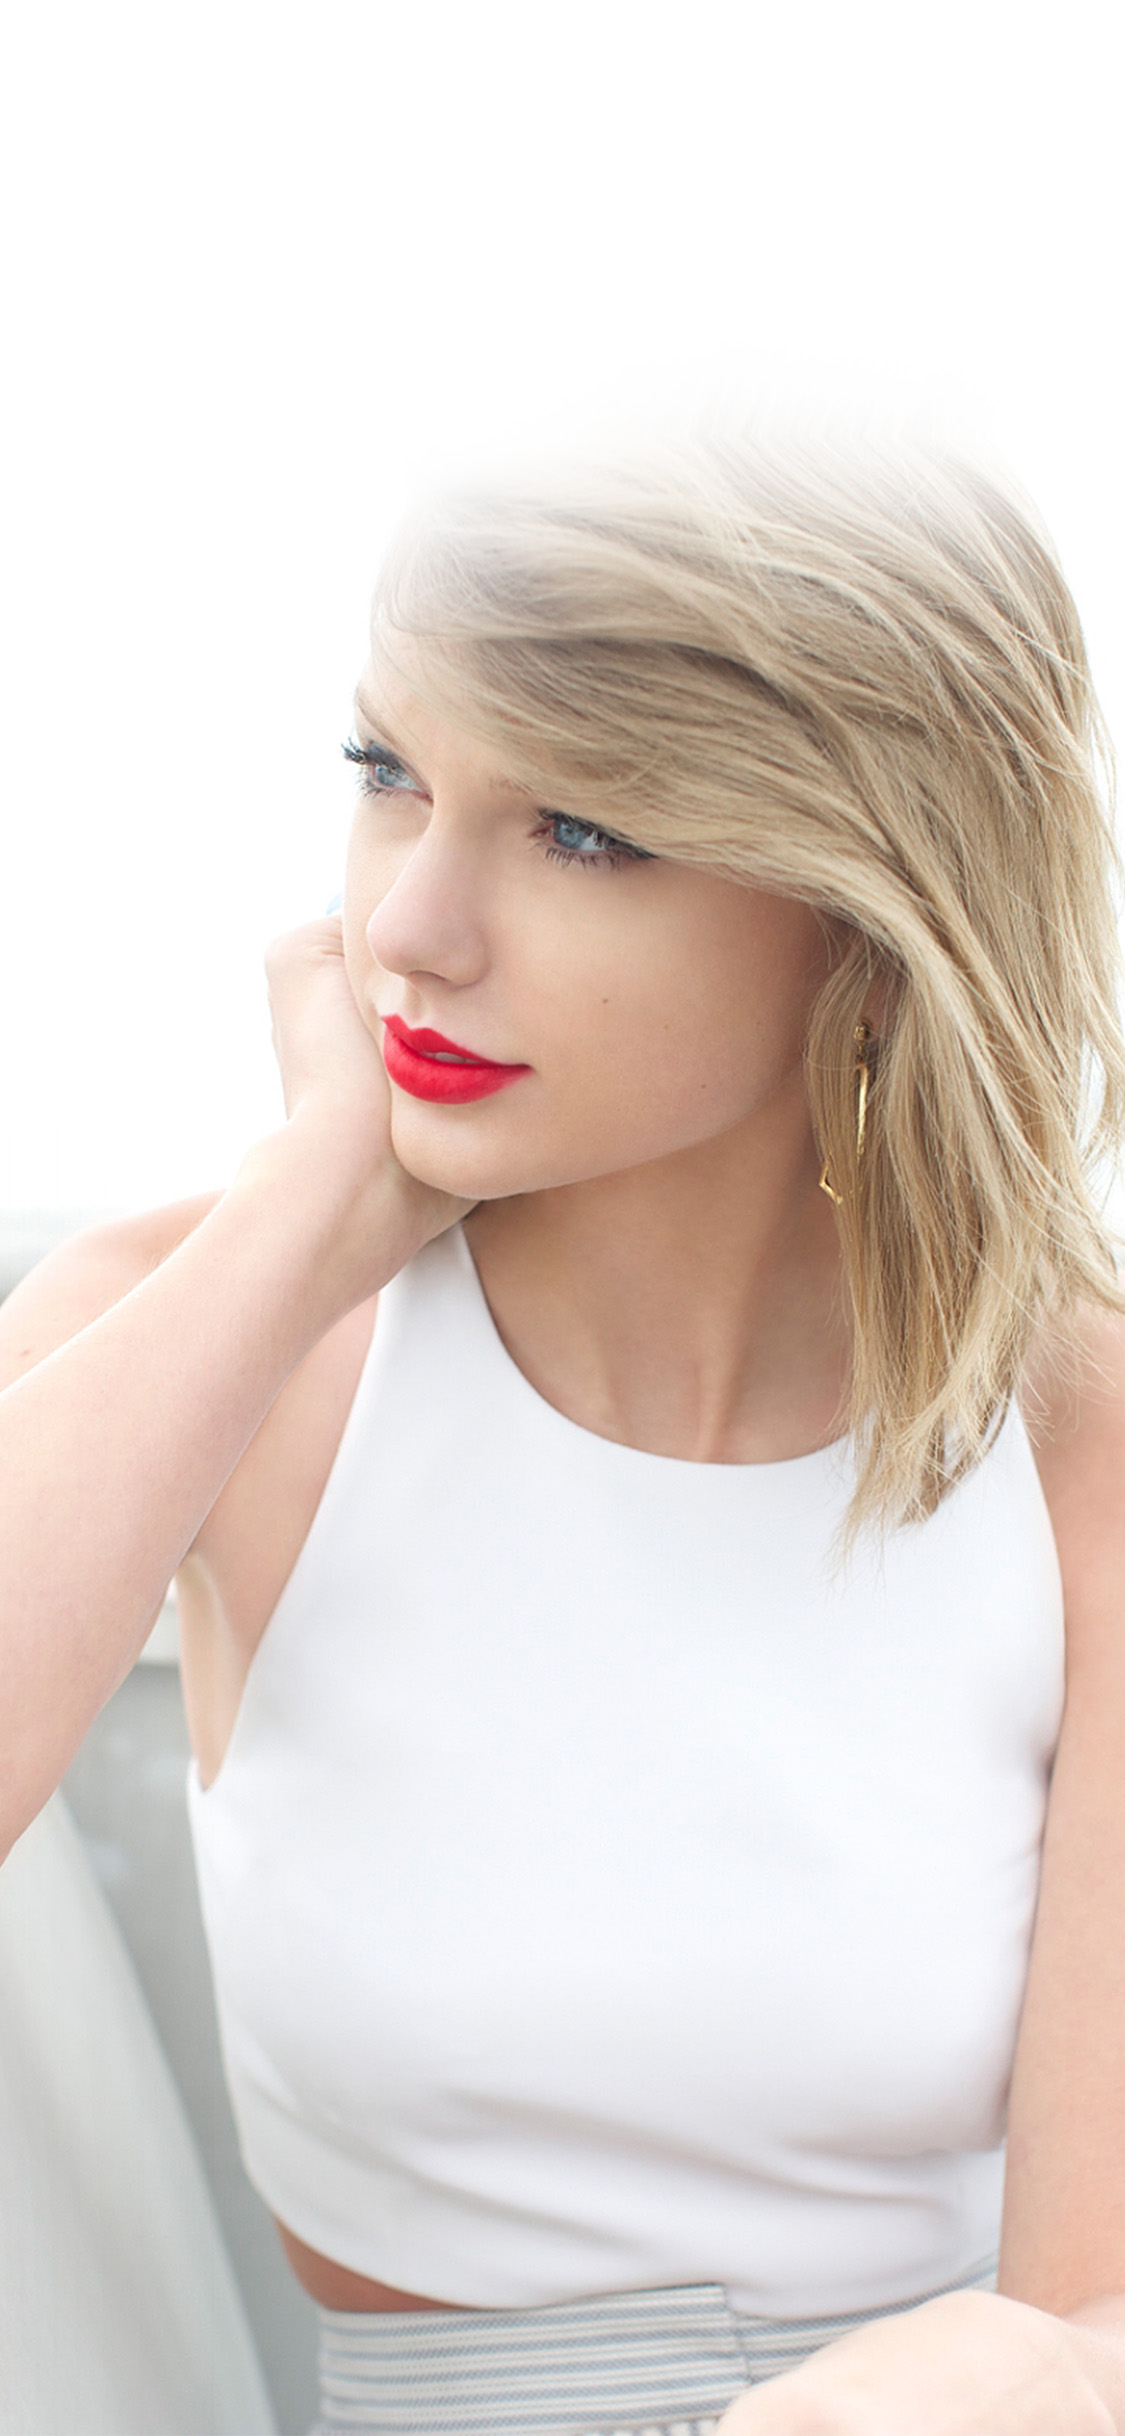 iPhonexpapers.com-Apple-iPhone-wallpaper-ho87-taylor-swift-girl-artist-white